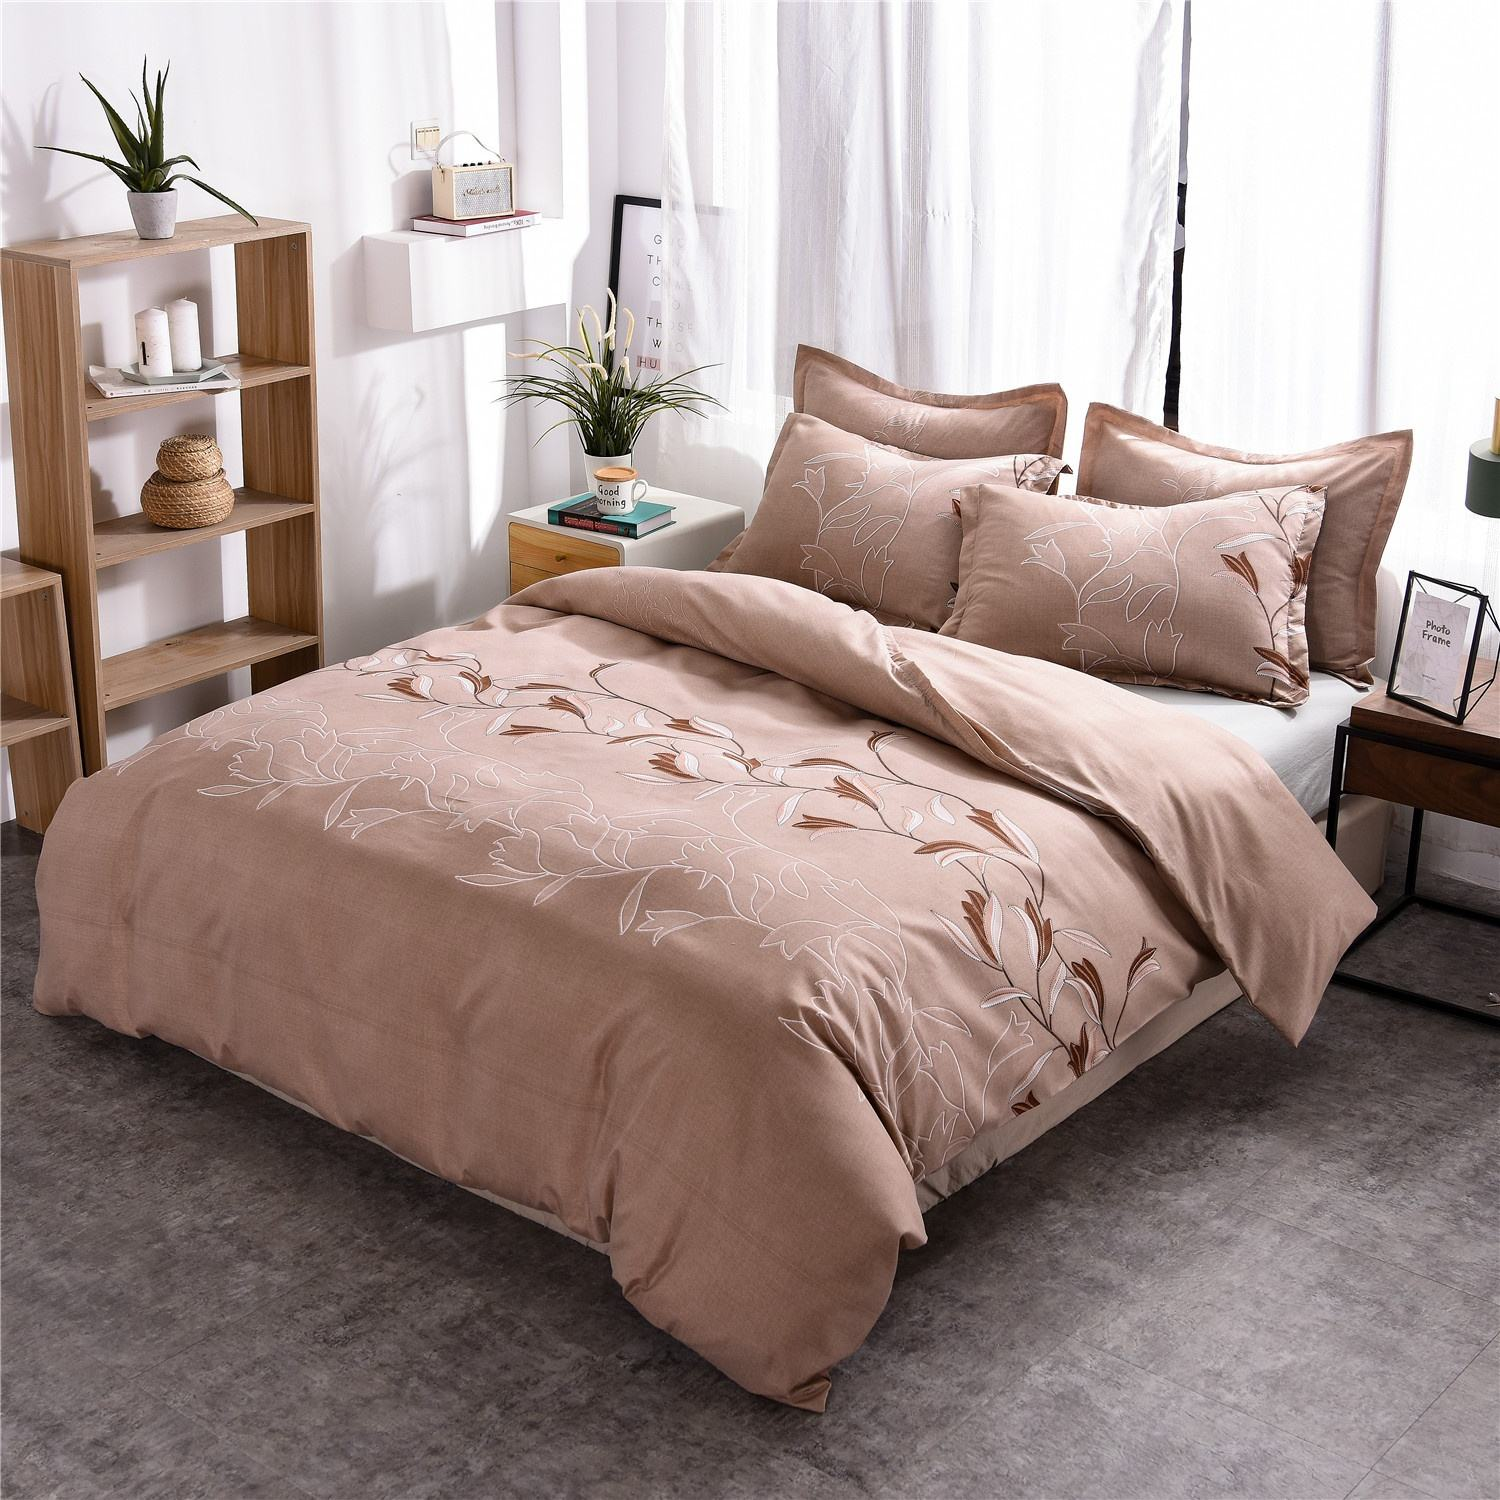 Polyester fabric Simple Plain Color Printed duvet cover set bedding article